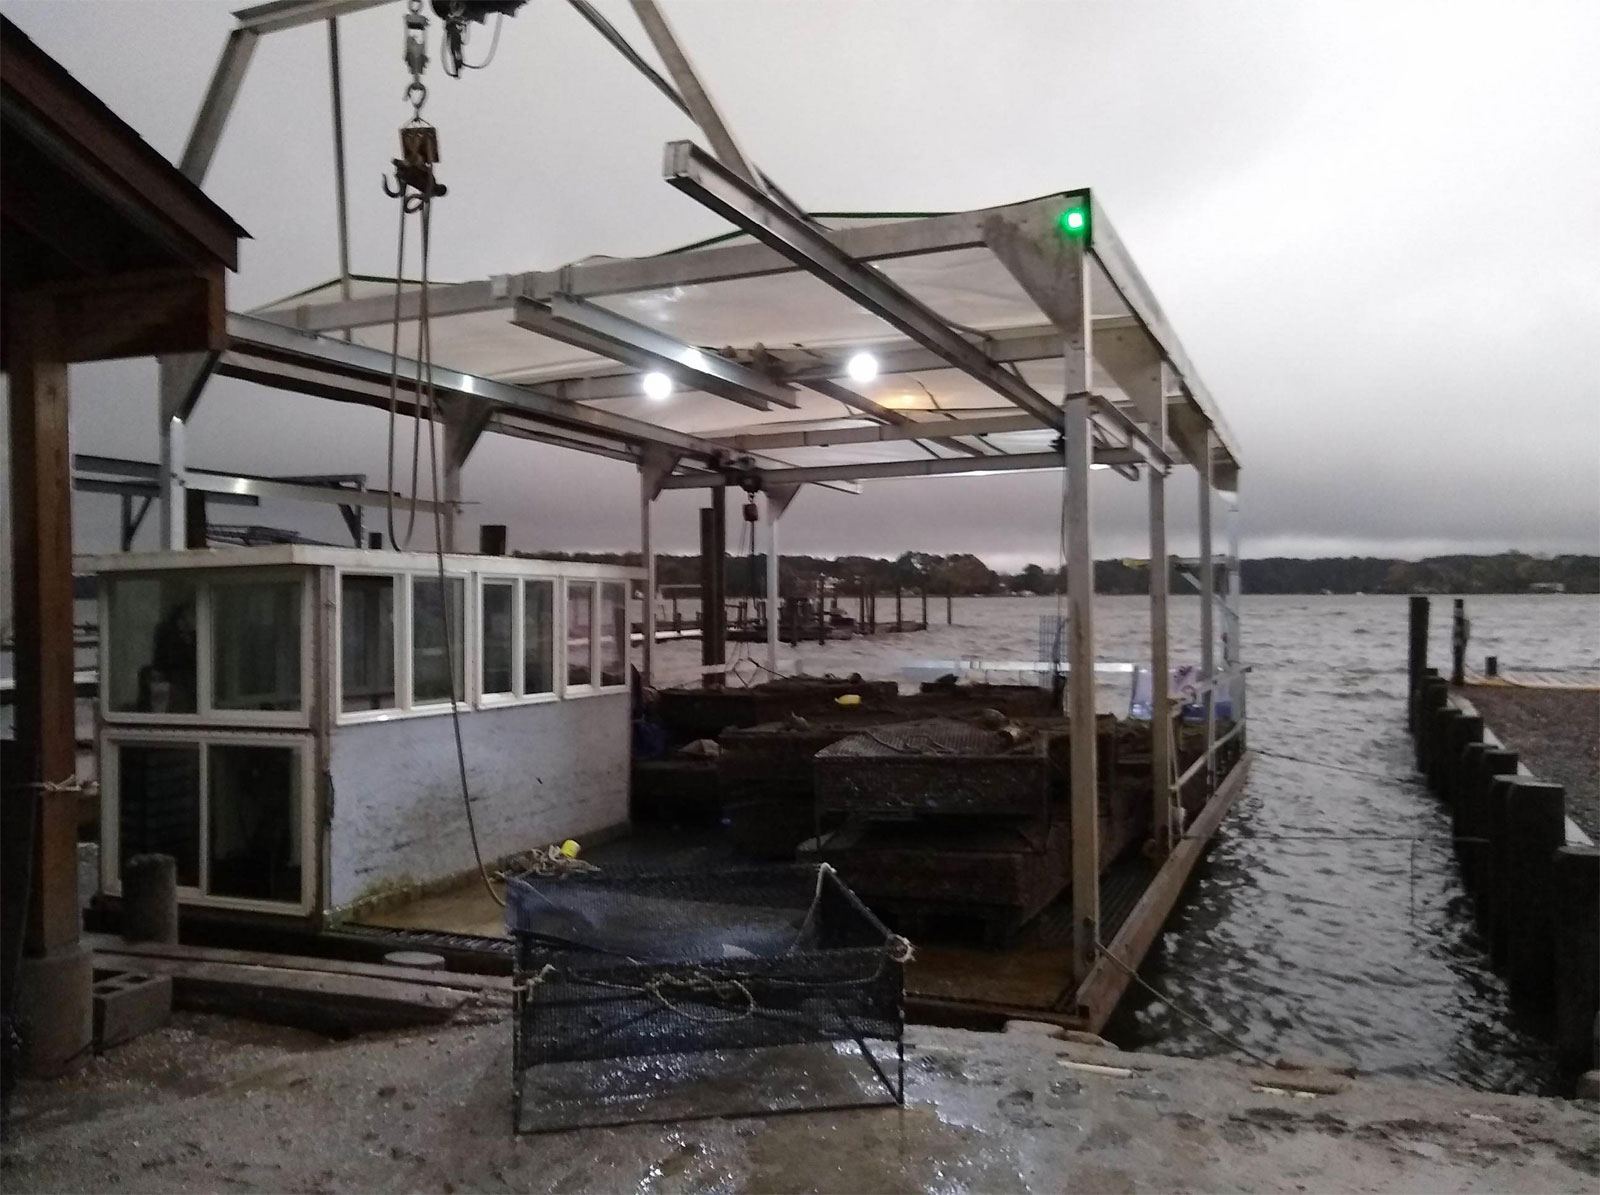 Ward Oyster Company - Aquaculture Oyster Farm - Gloucester Virginia